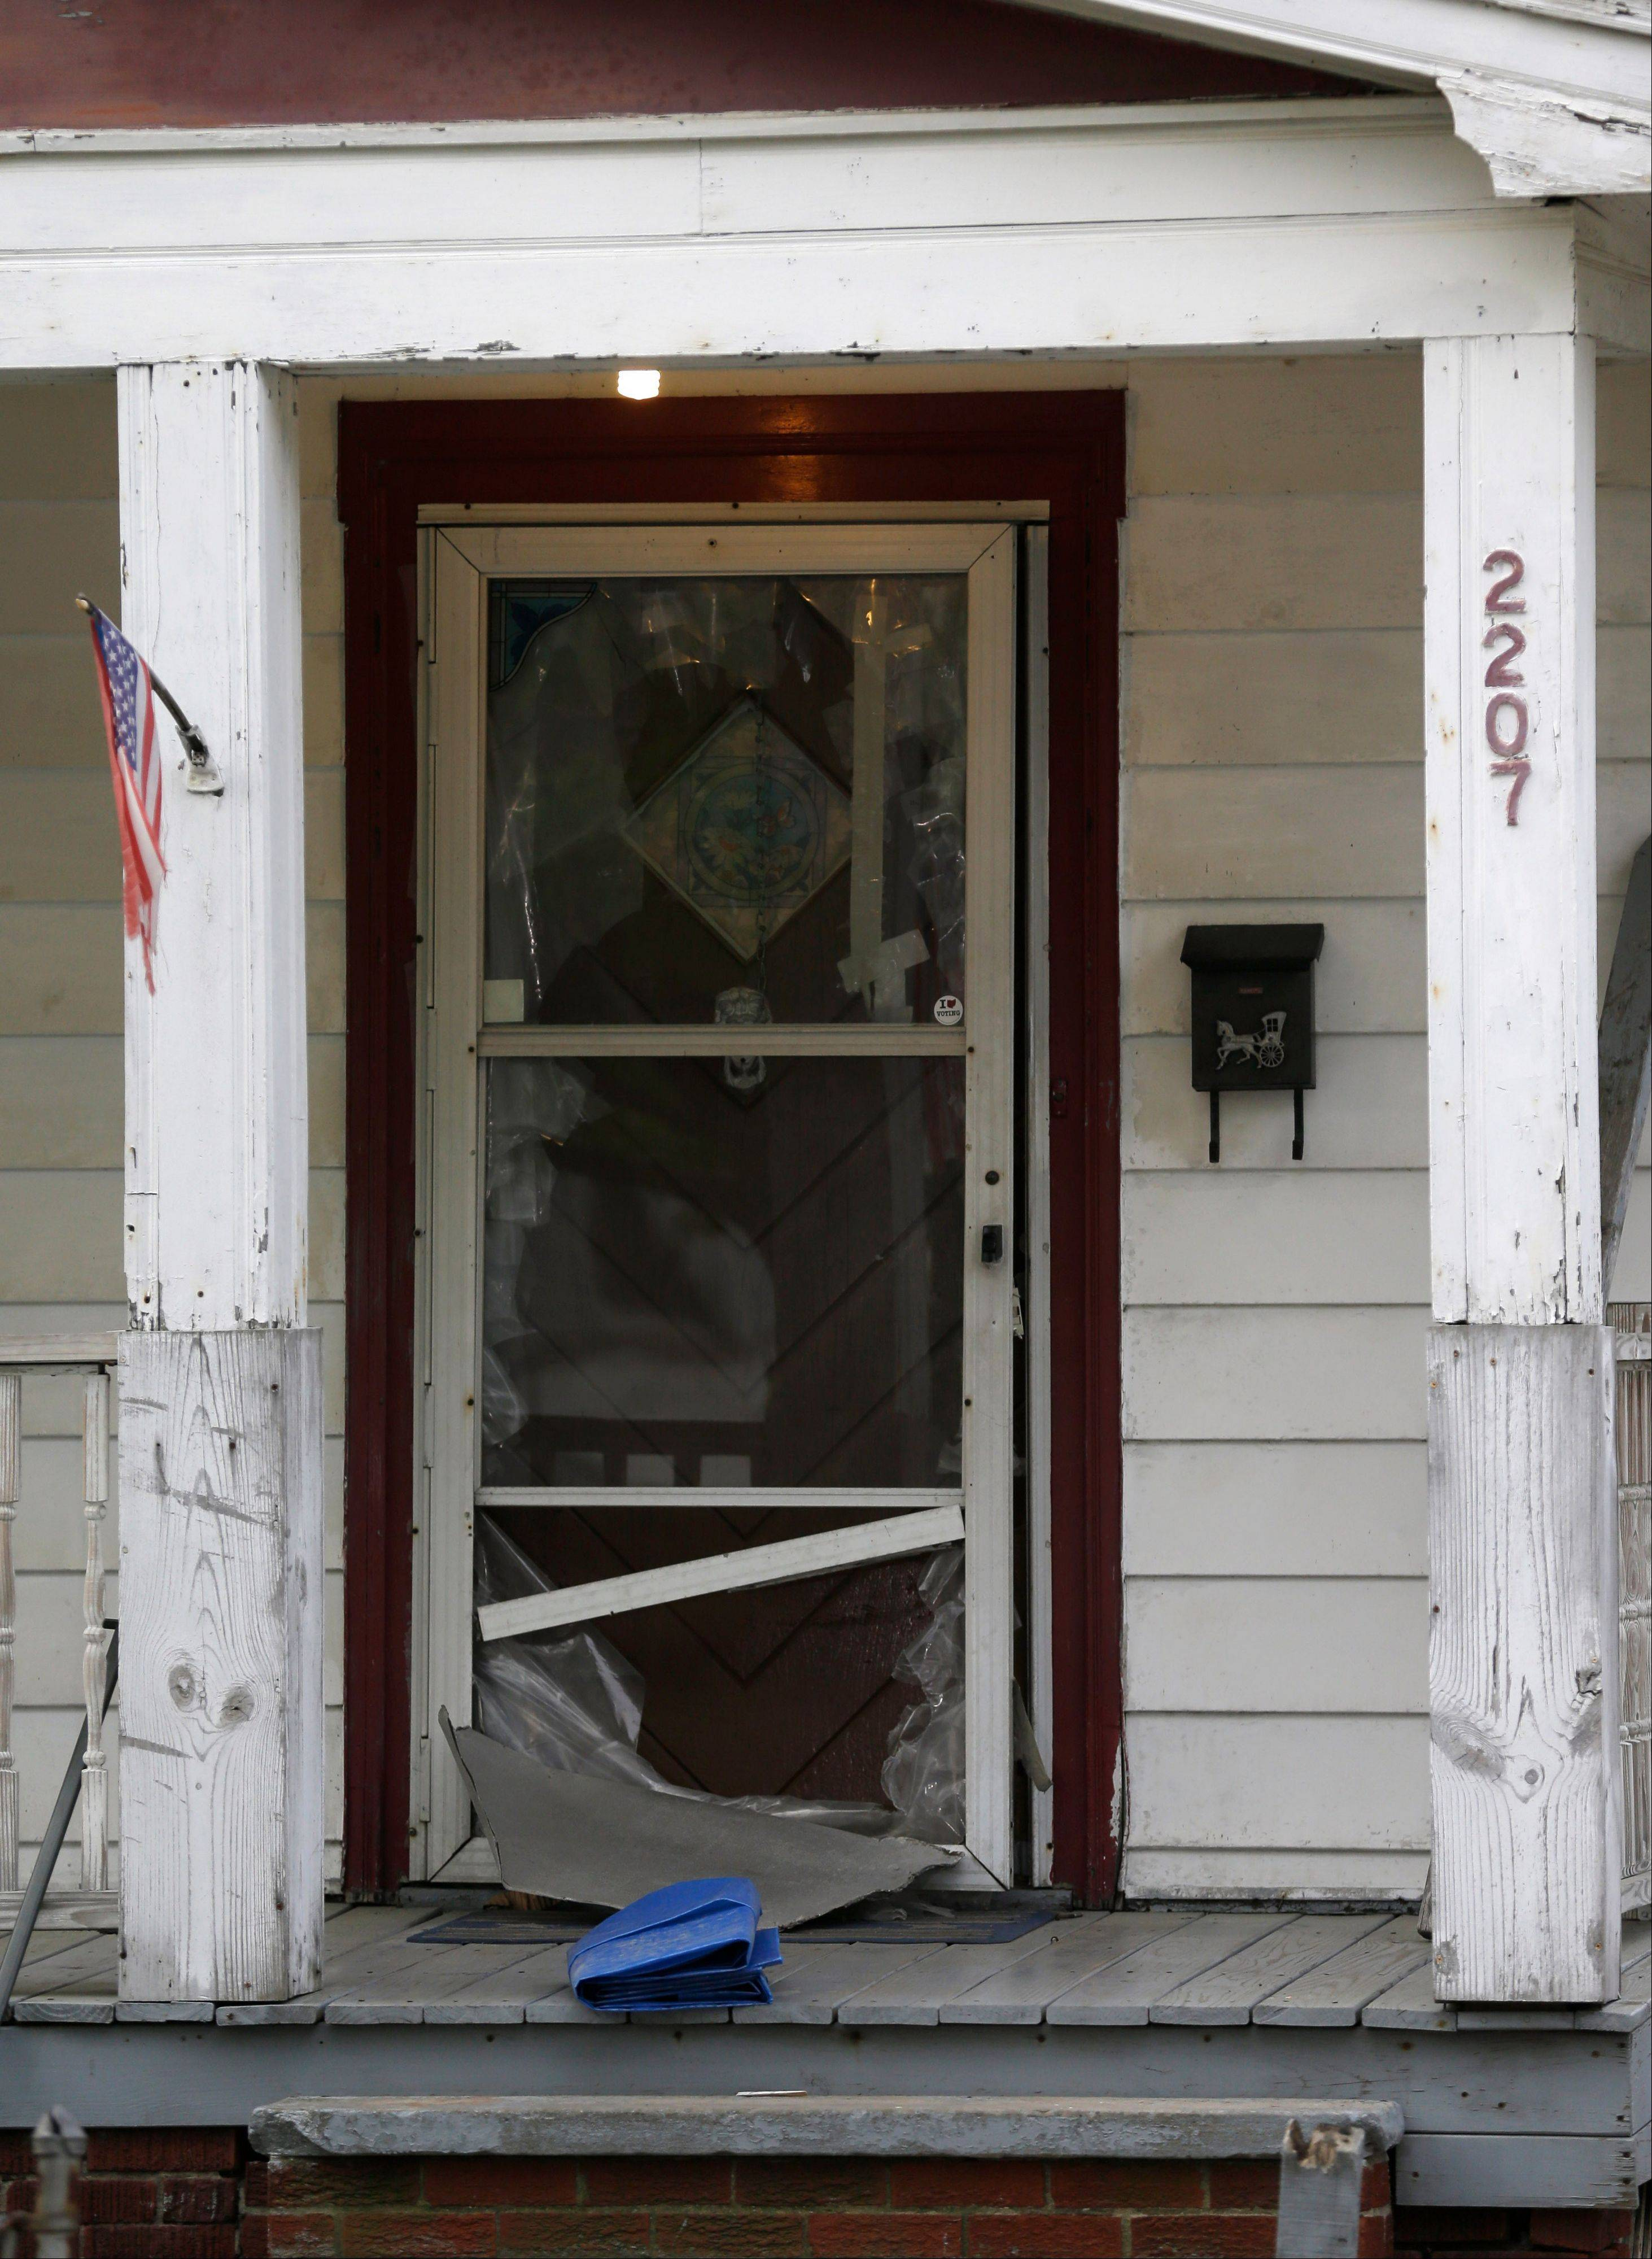 The front door of a house where three women escaped in Cleveland. Amanda Berry, Gina DeJesus and Michelle Knight, who went missing separately about a decade ago, were found in the home just south of downtown Cleveland Monday, May 6, and likely had been tied up during years of captivity, said police, who arrested three brothers.